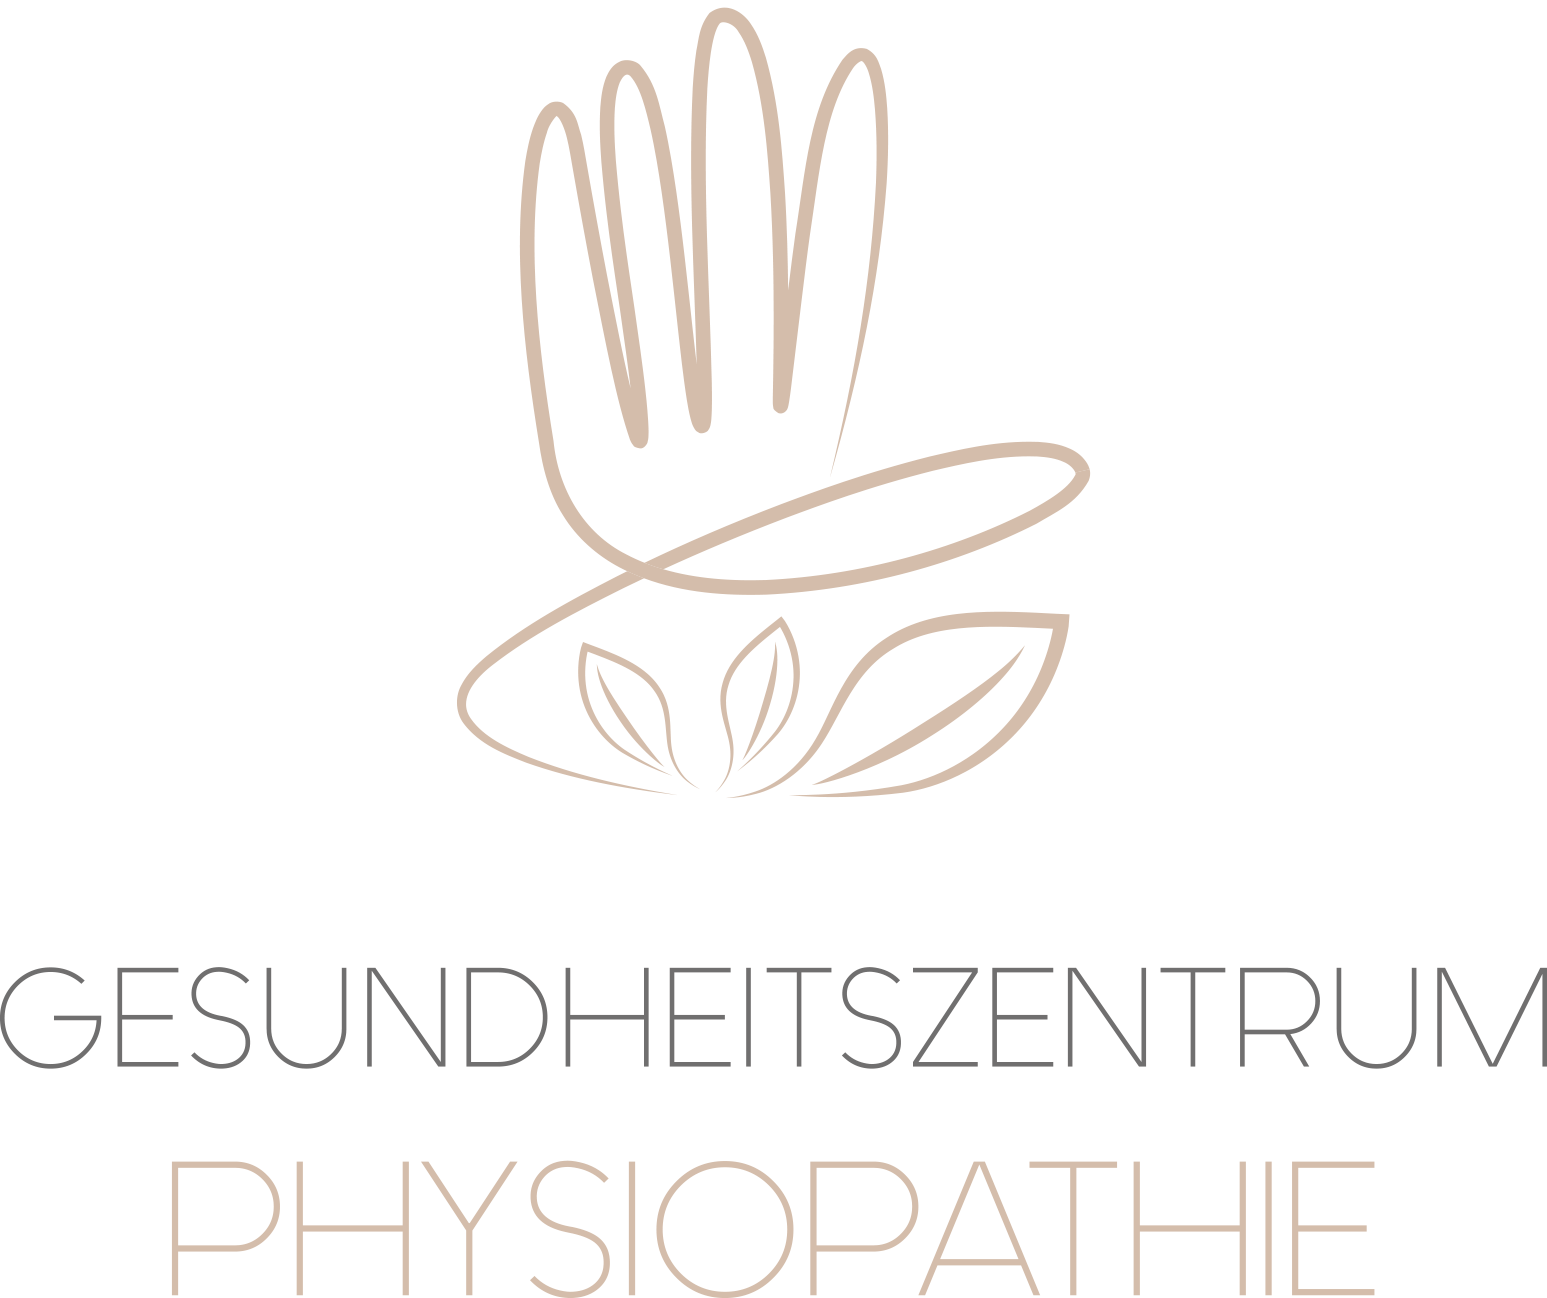 GZ-Physiopathie Logo